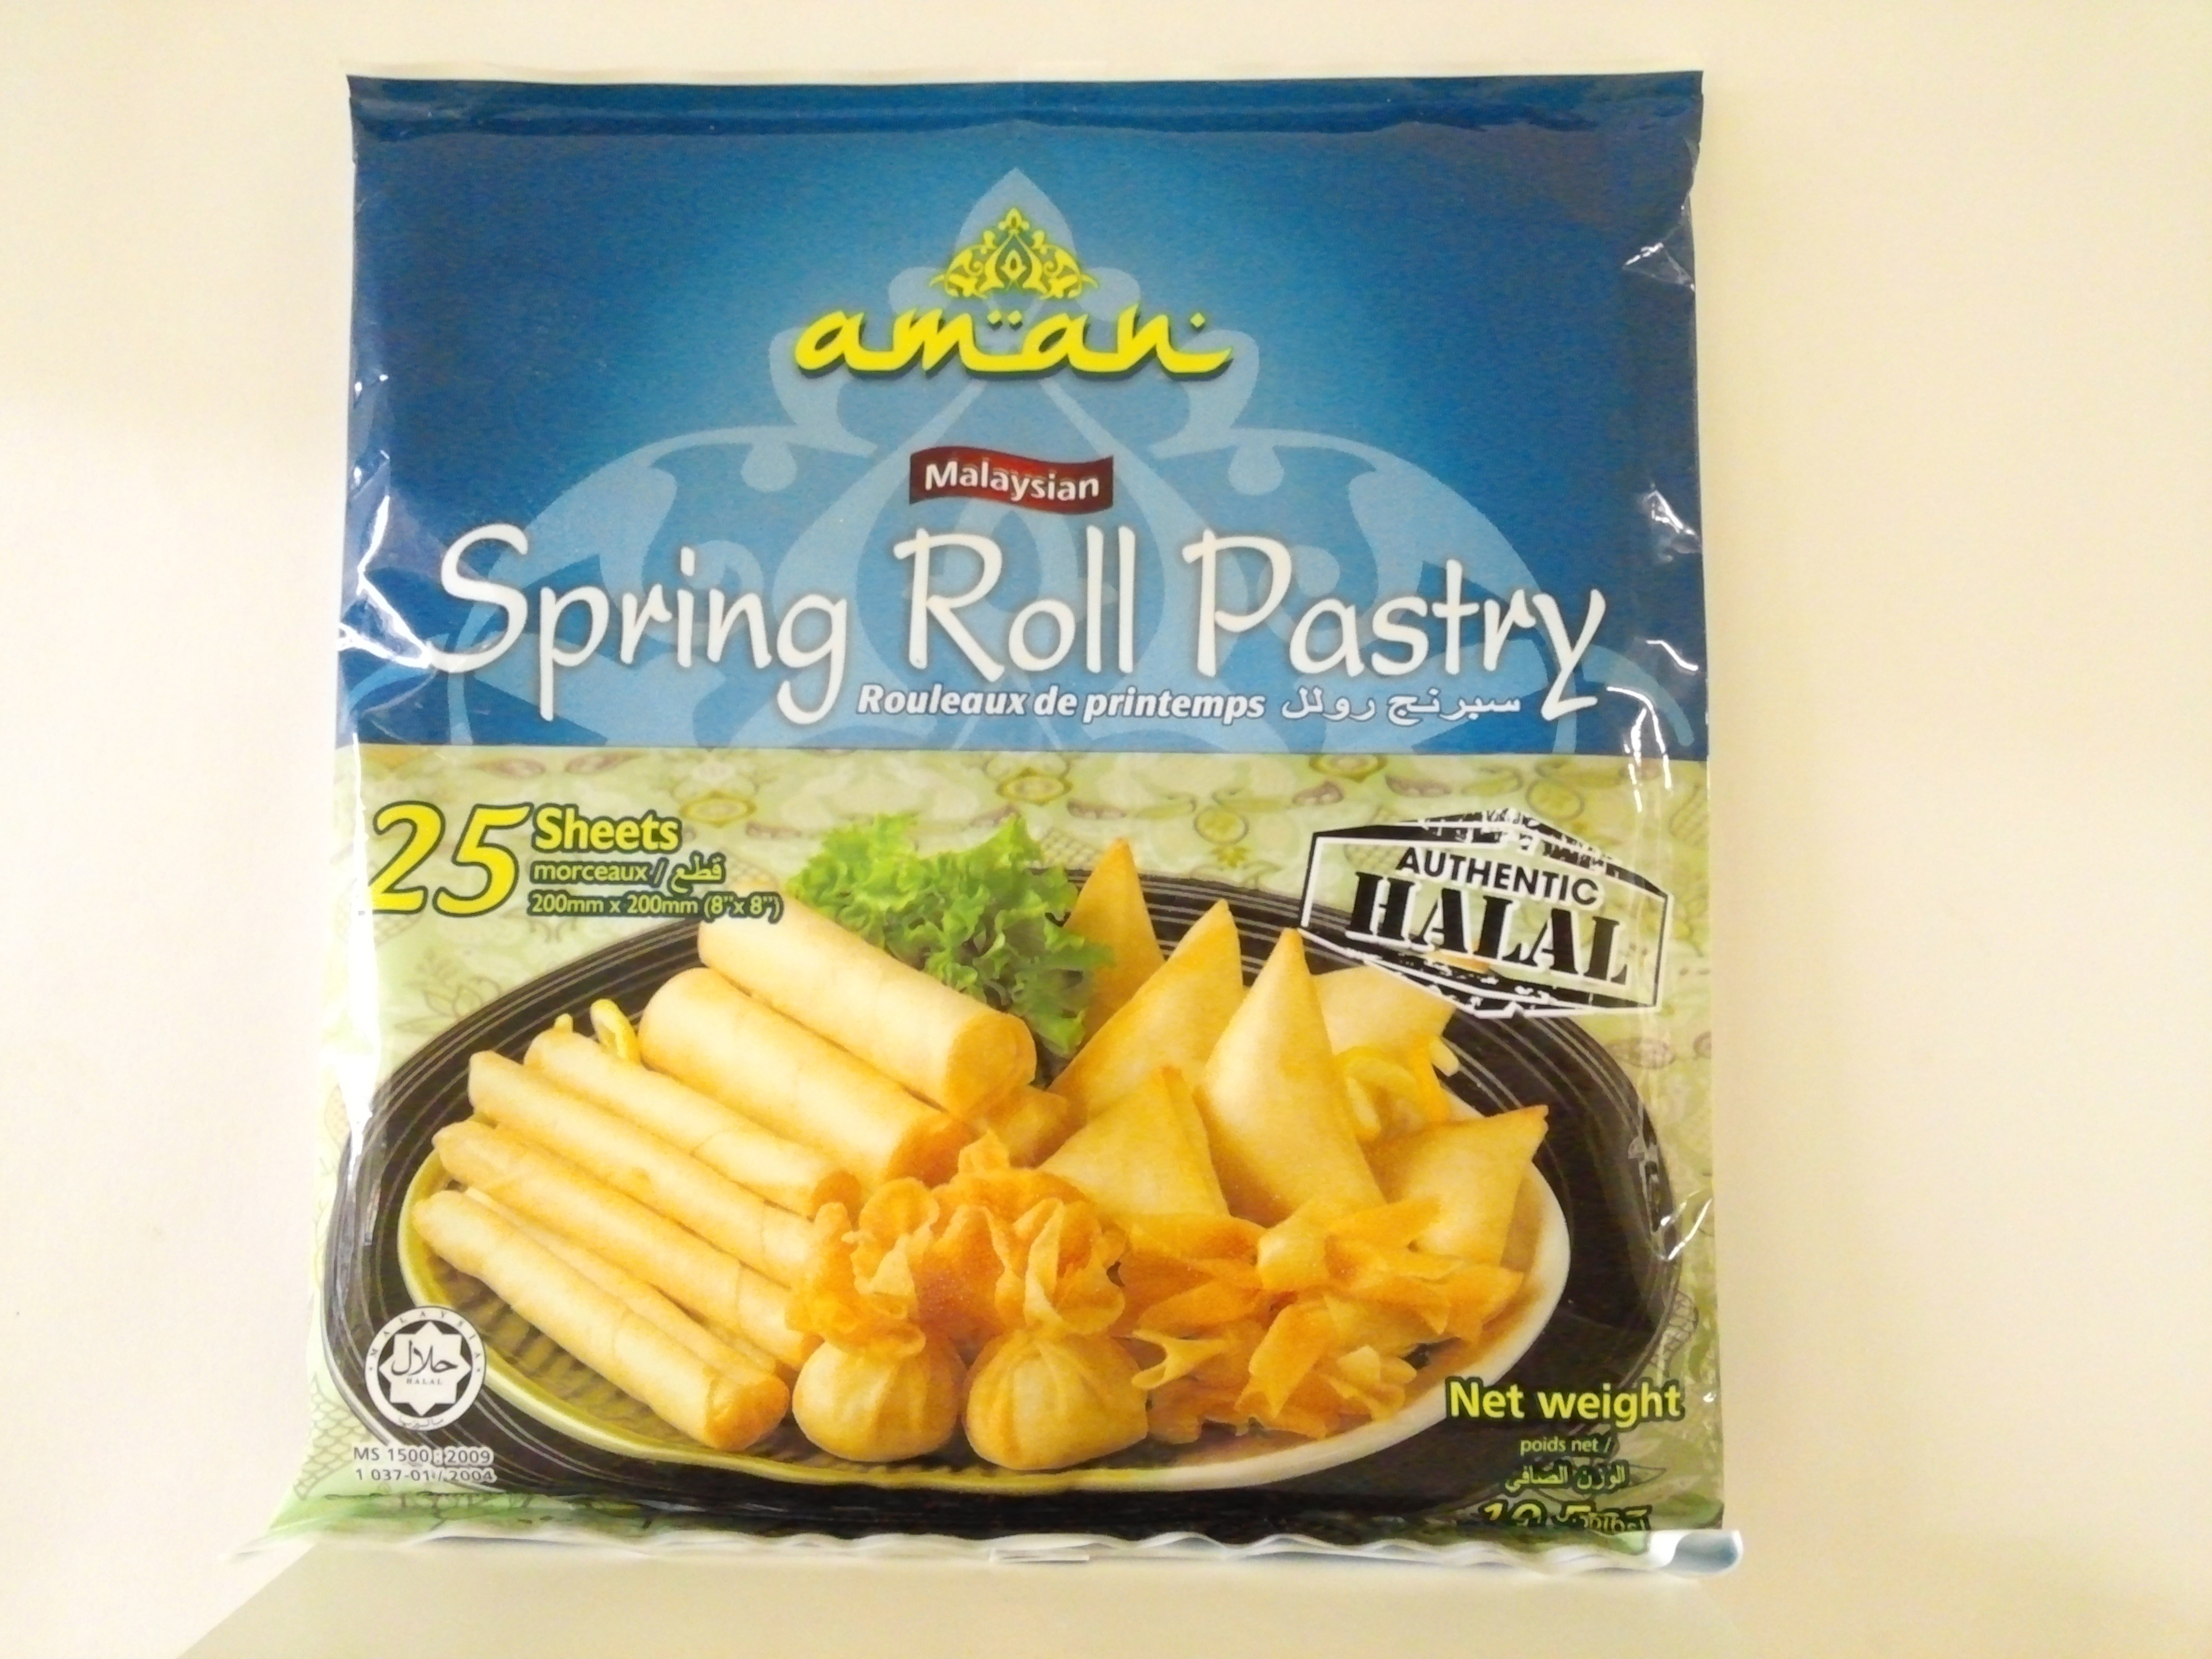 Aman Spring Roll Pastry 25 sheets 10.5 oz